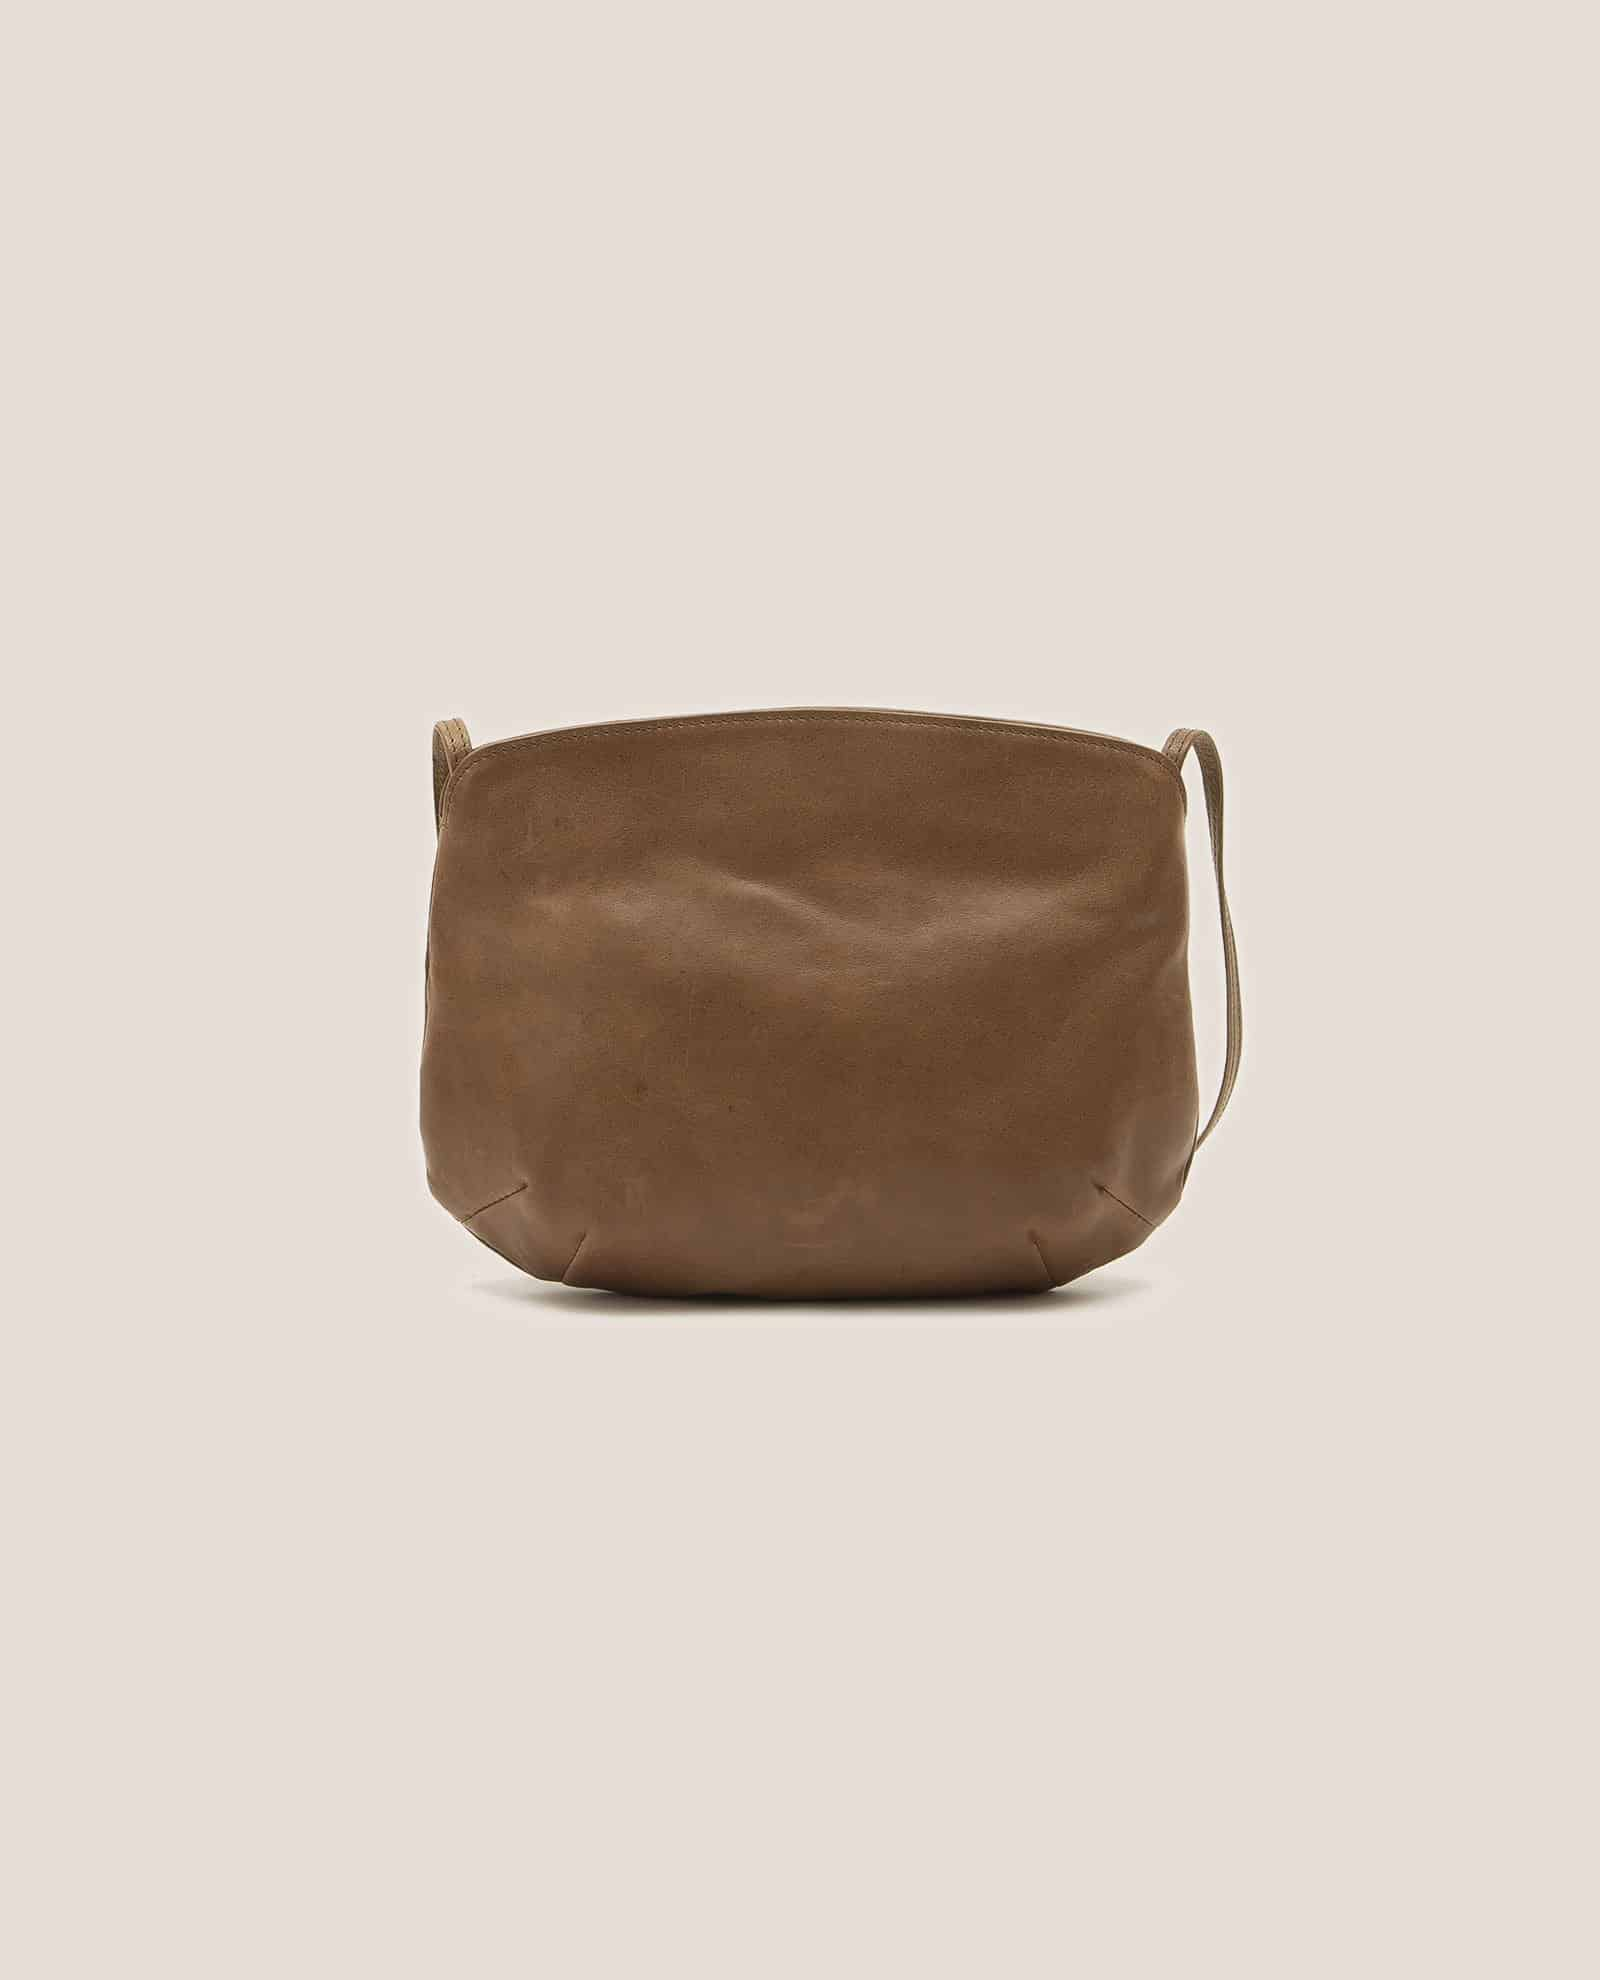 Cross Body Bag, Debbie Taupe (ref #DPT-15) Petty Things - back